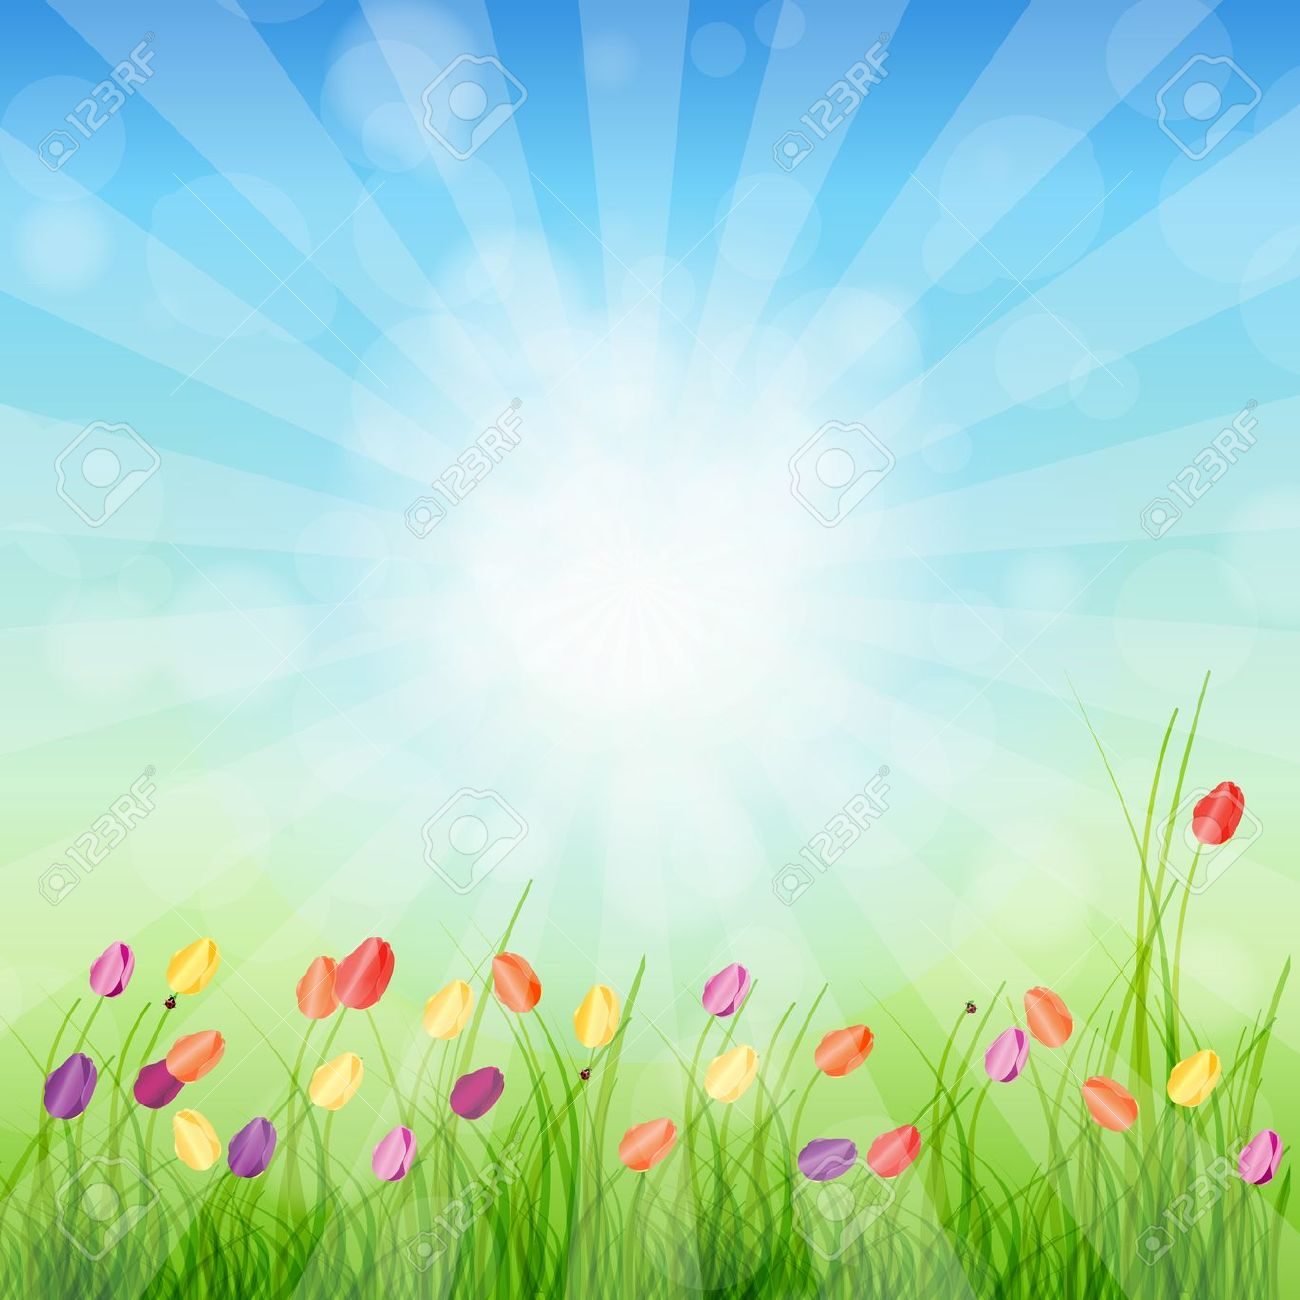 Free download Summer Backgrounds Cliparts Download Clip Art.